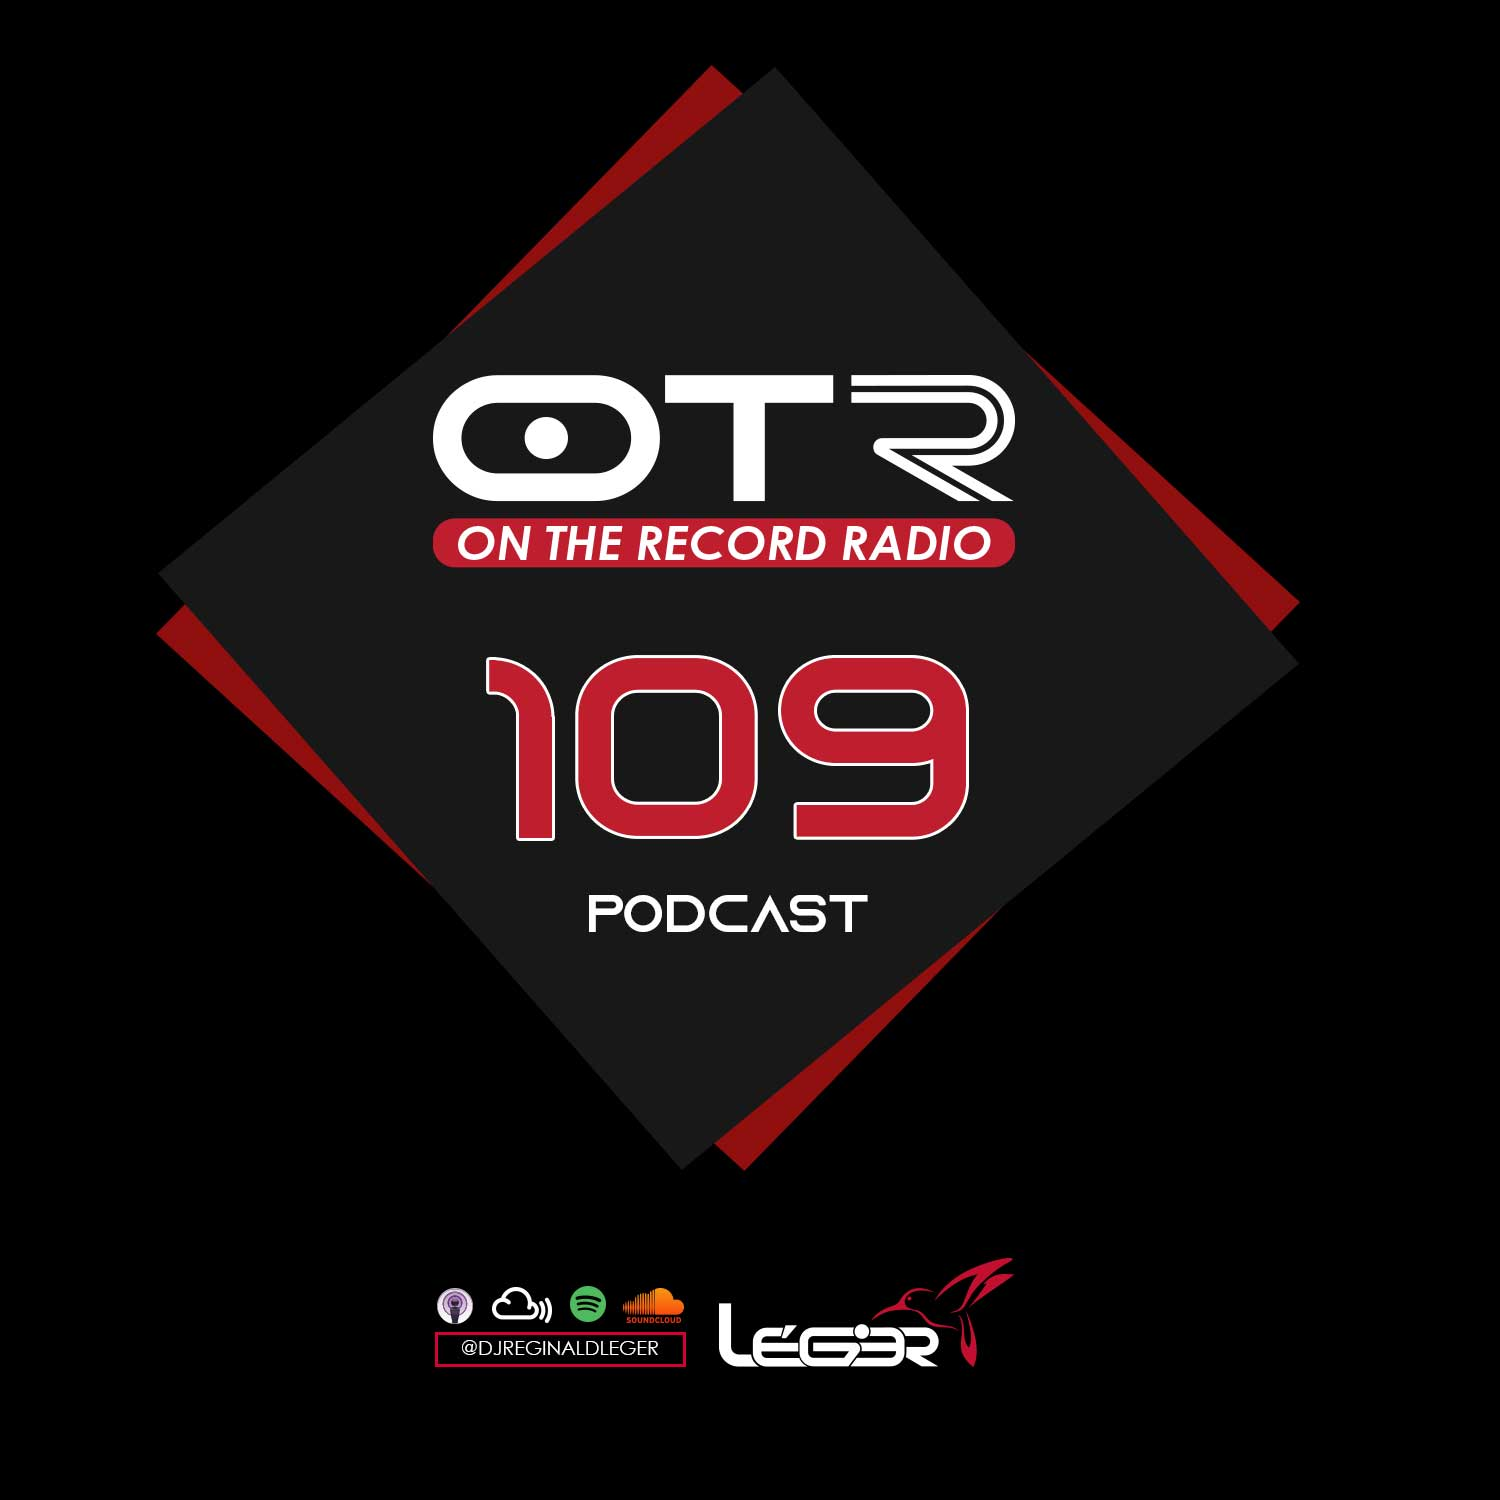 On The Record | OTR 109